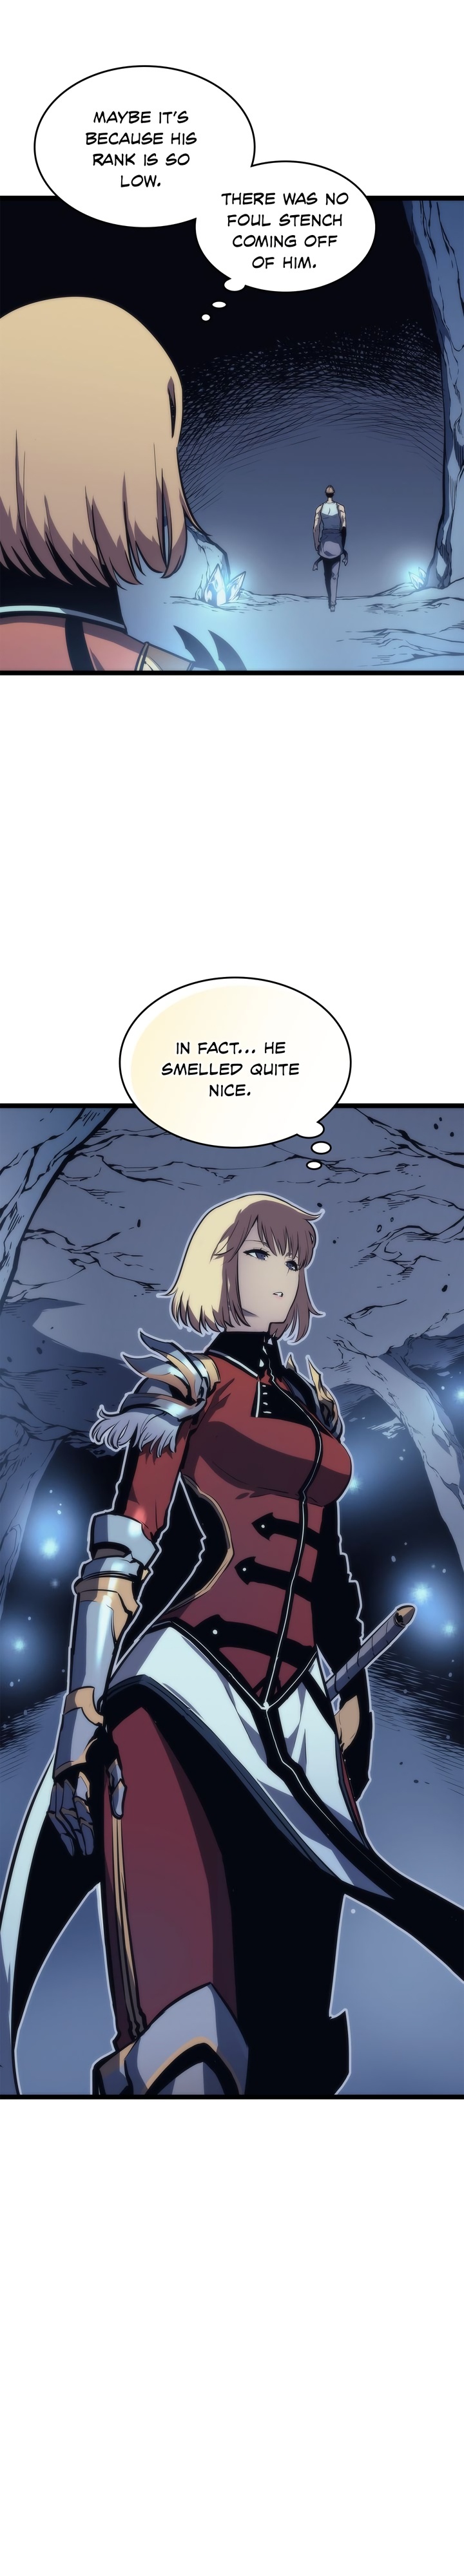 Solo Leveling, Chapter 67 image 009